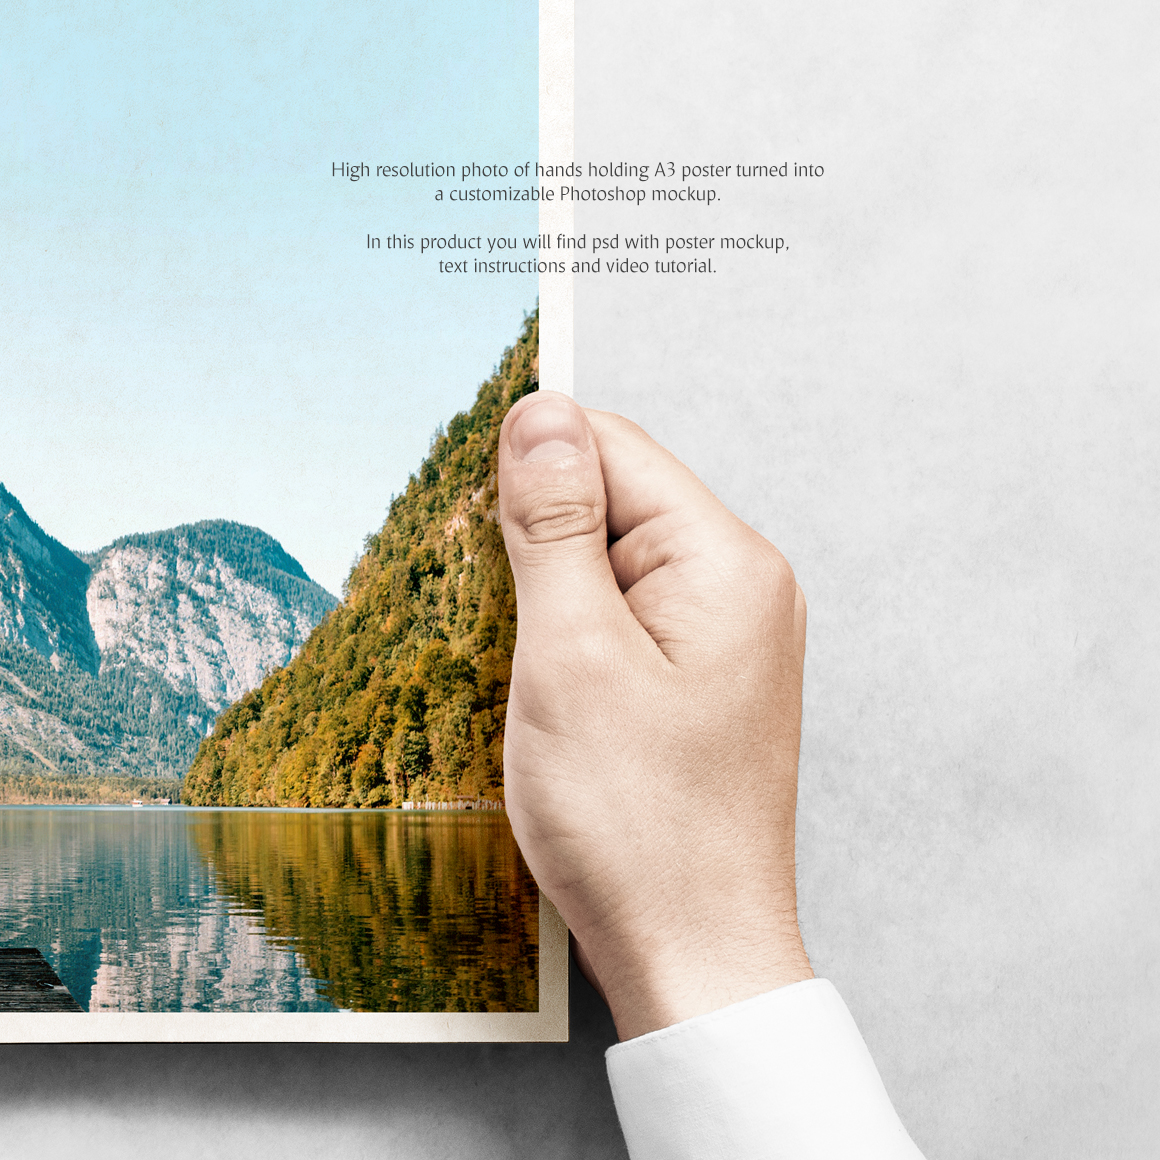 Download Wall Art Mockup Psd Free PSD - Free PSD Mockup Templates